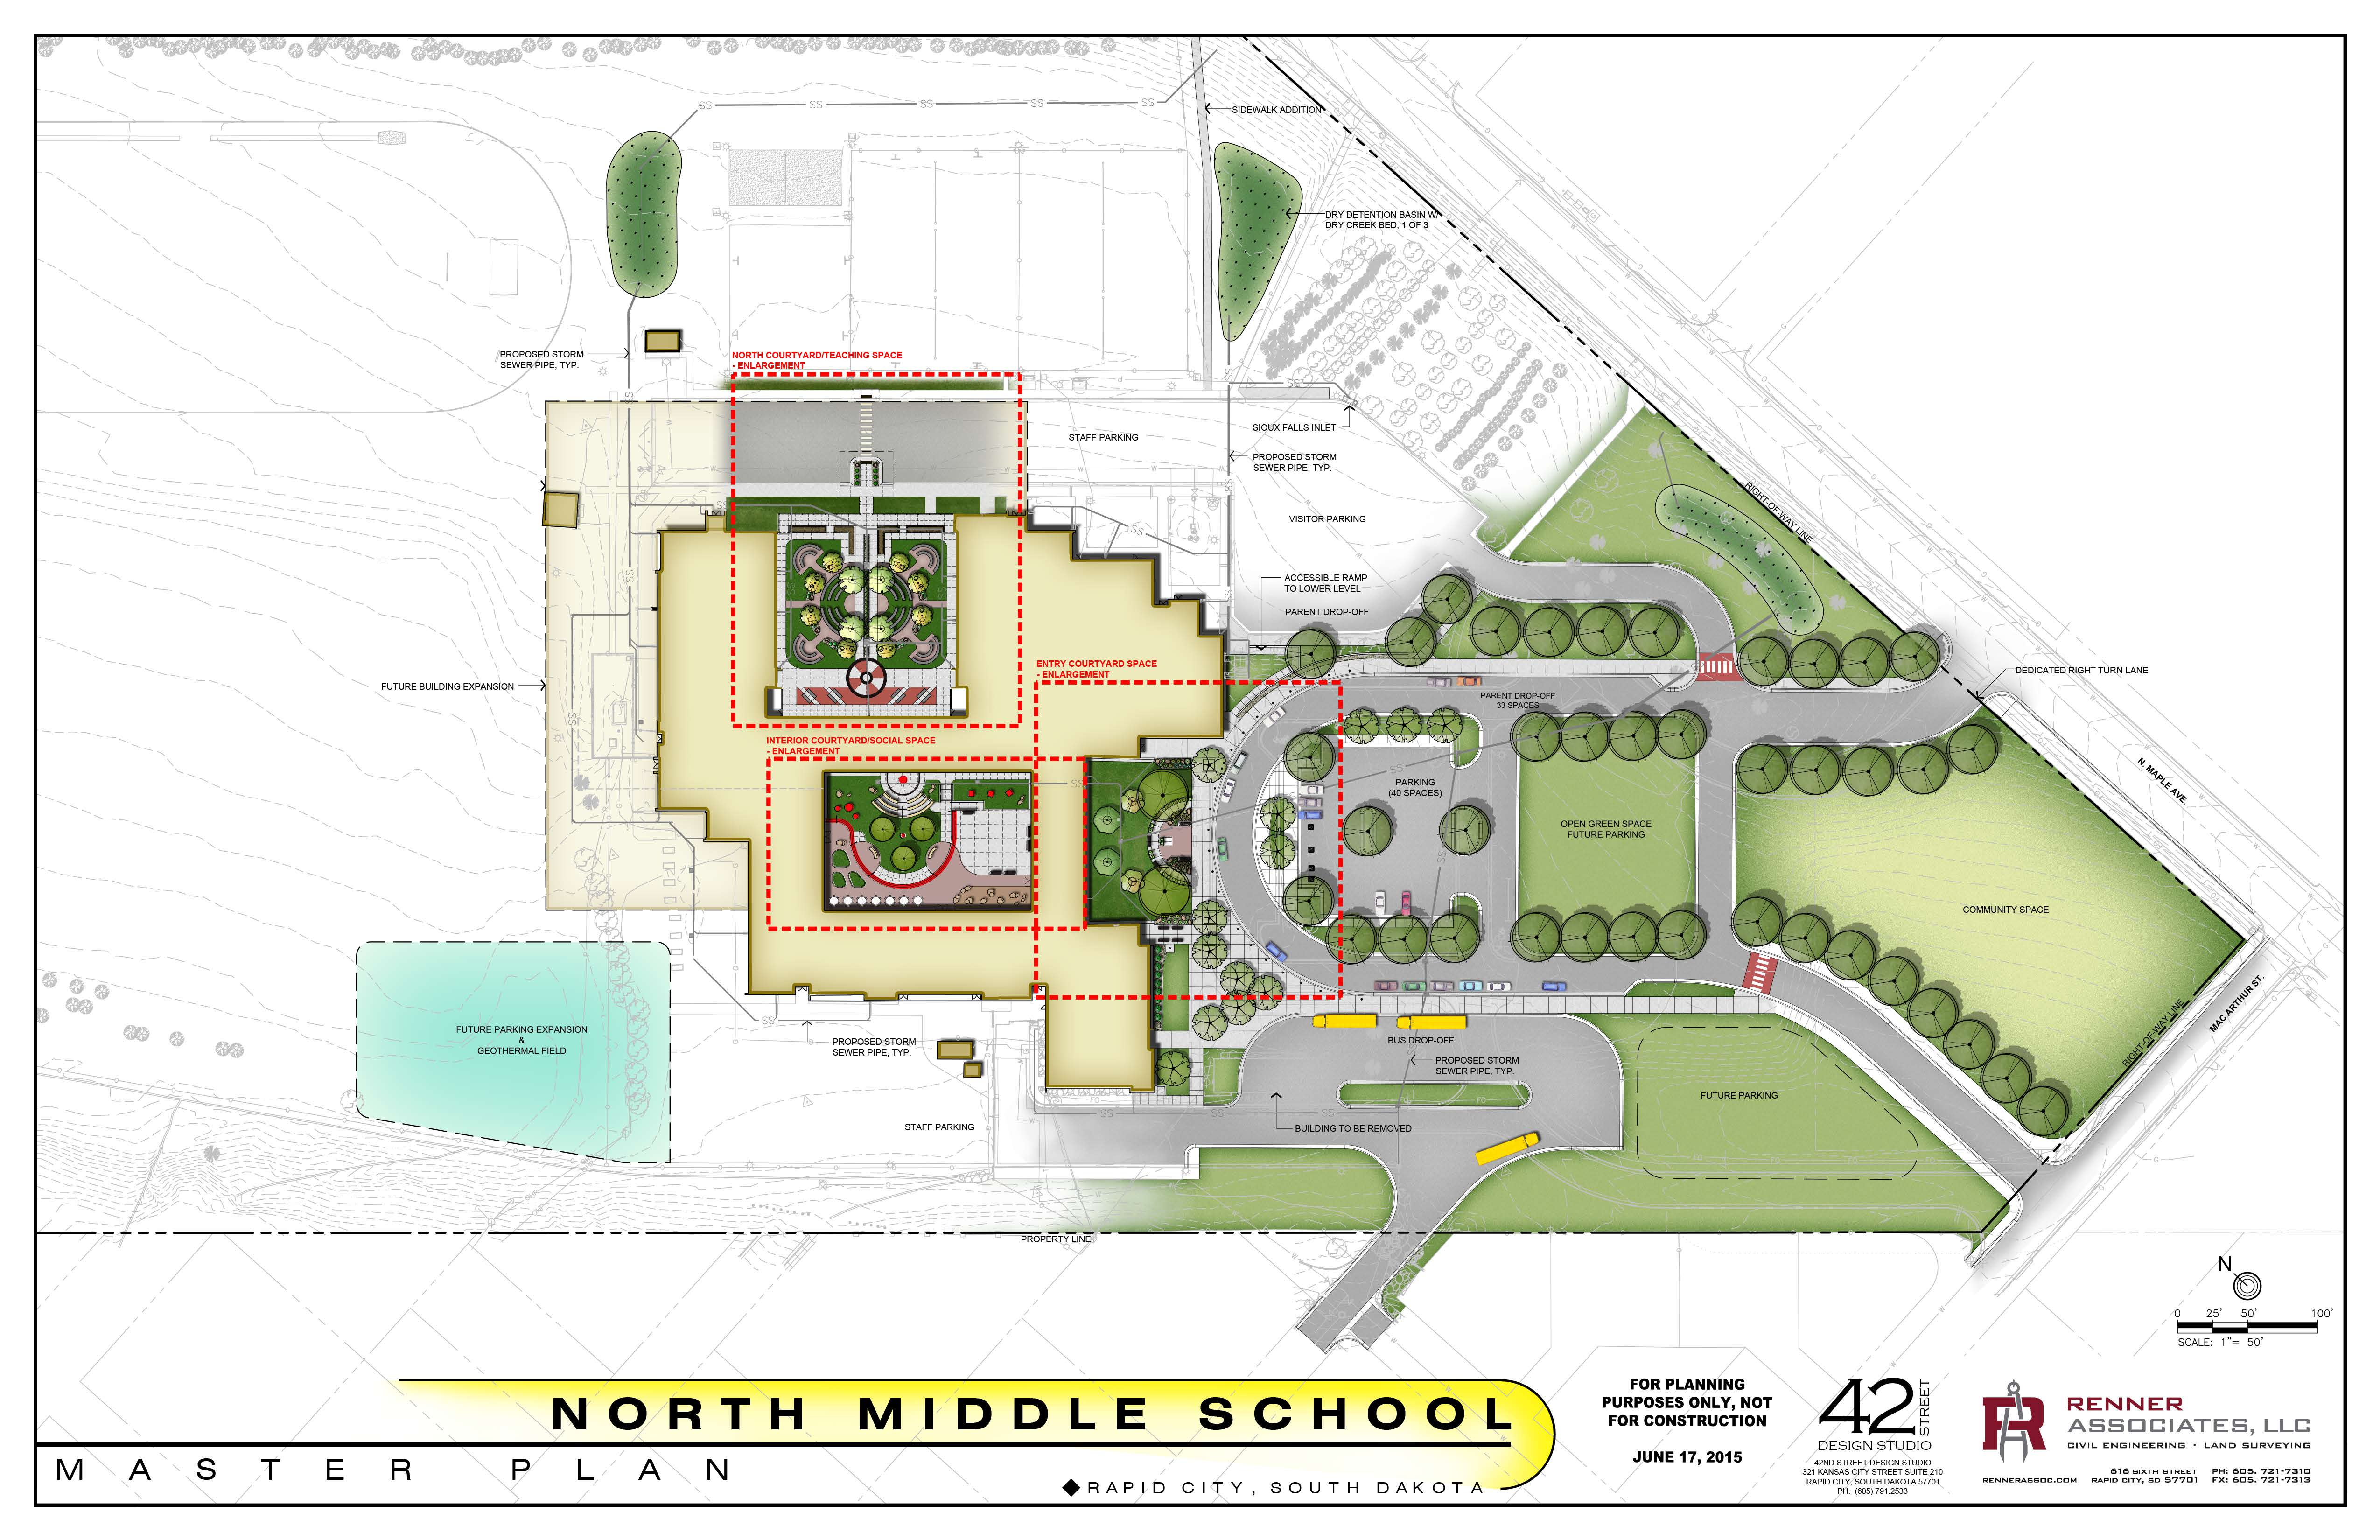 North Middle School Master Plan